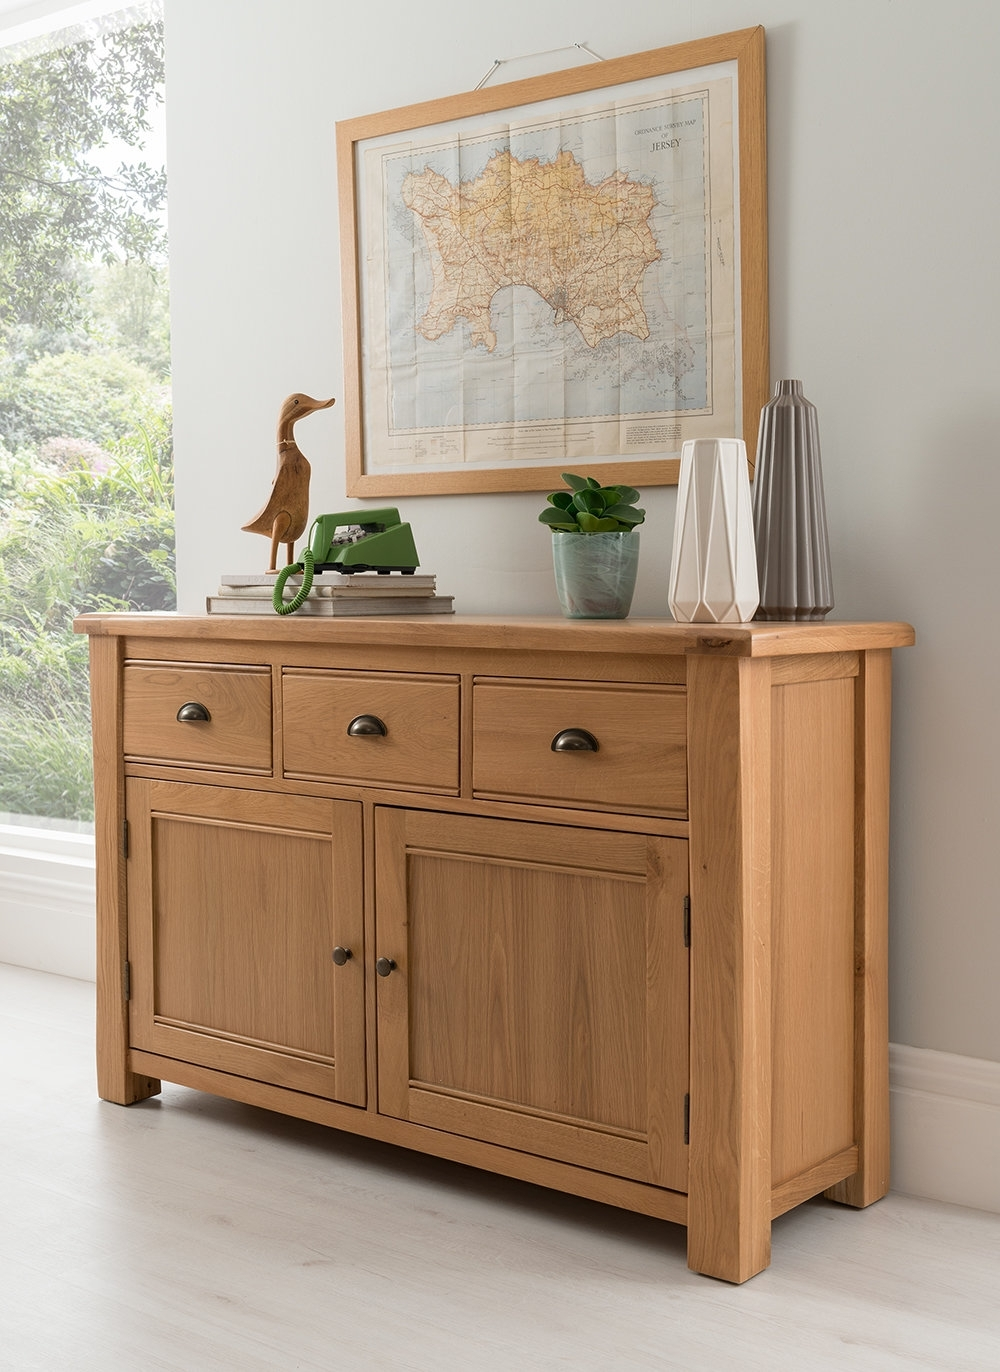 Homestead Living Brooklyn 2 Door 3 Drawer Sideboard | Wayfair.co.uk throughout Aged Pine 3-Drawer 2-Door Sideboards (Image 15 of 30)